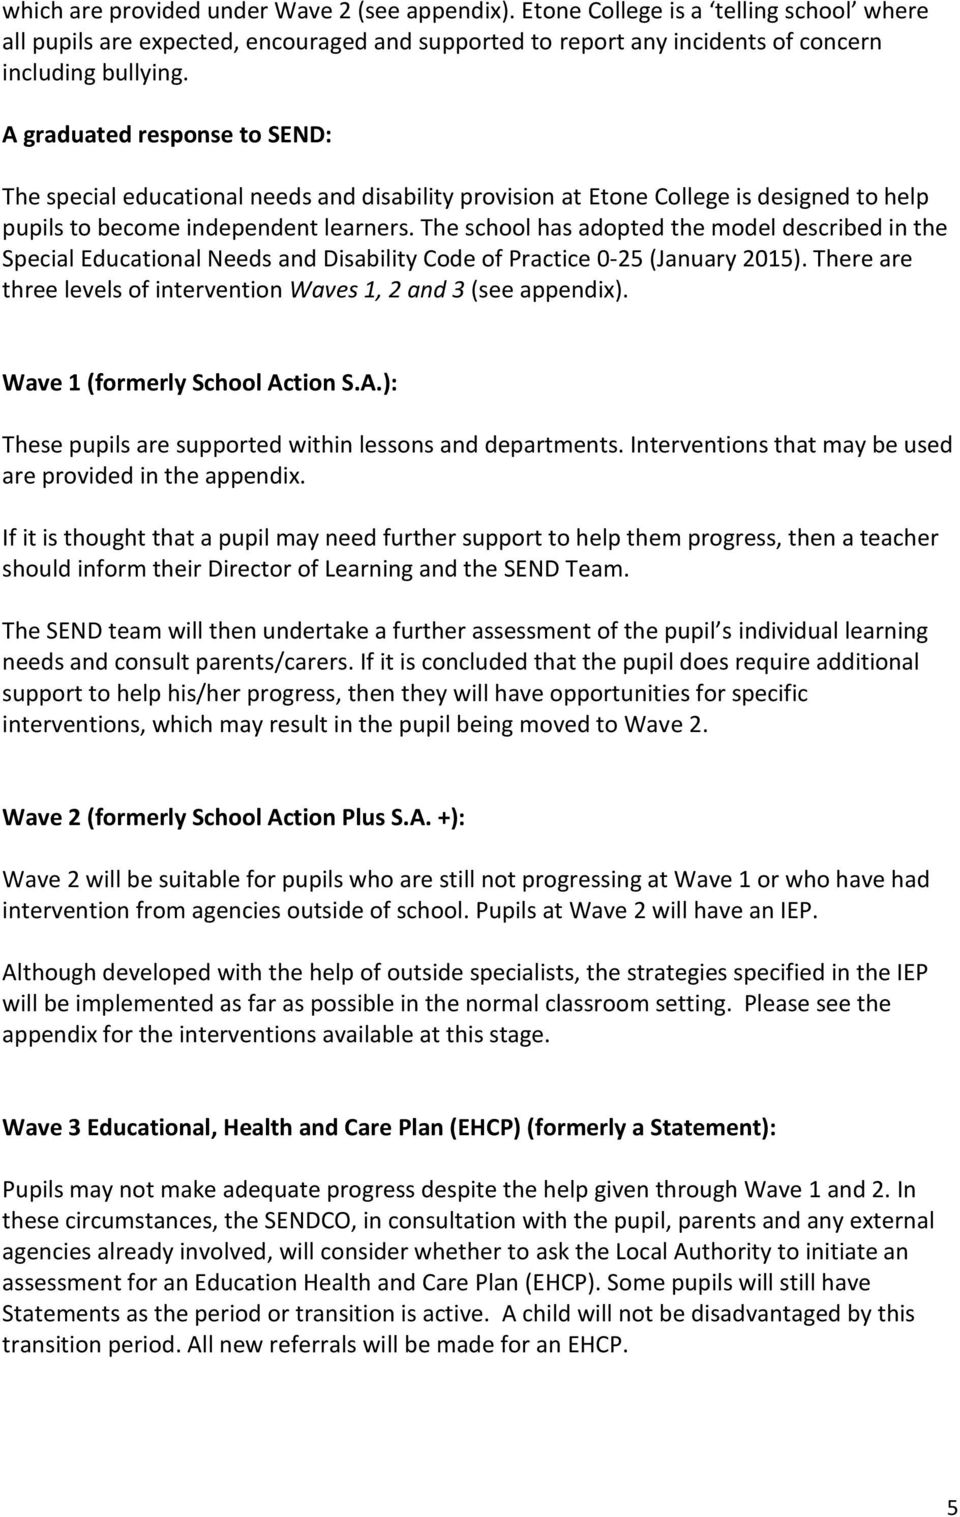 The school has adopted the model described in the Special Educational Needs and Disability Code of Practice 0-25 (January 2015). There are three levels of intervention Waves 1, 2 and 3 (see appendix).